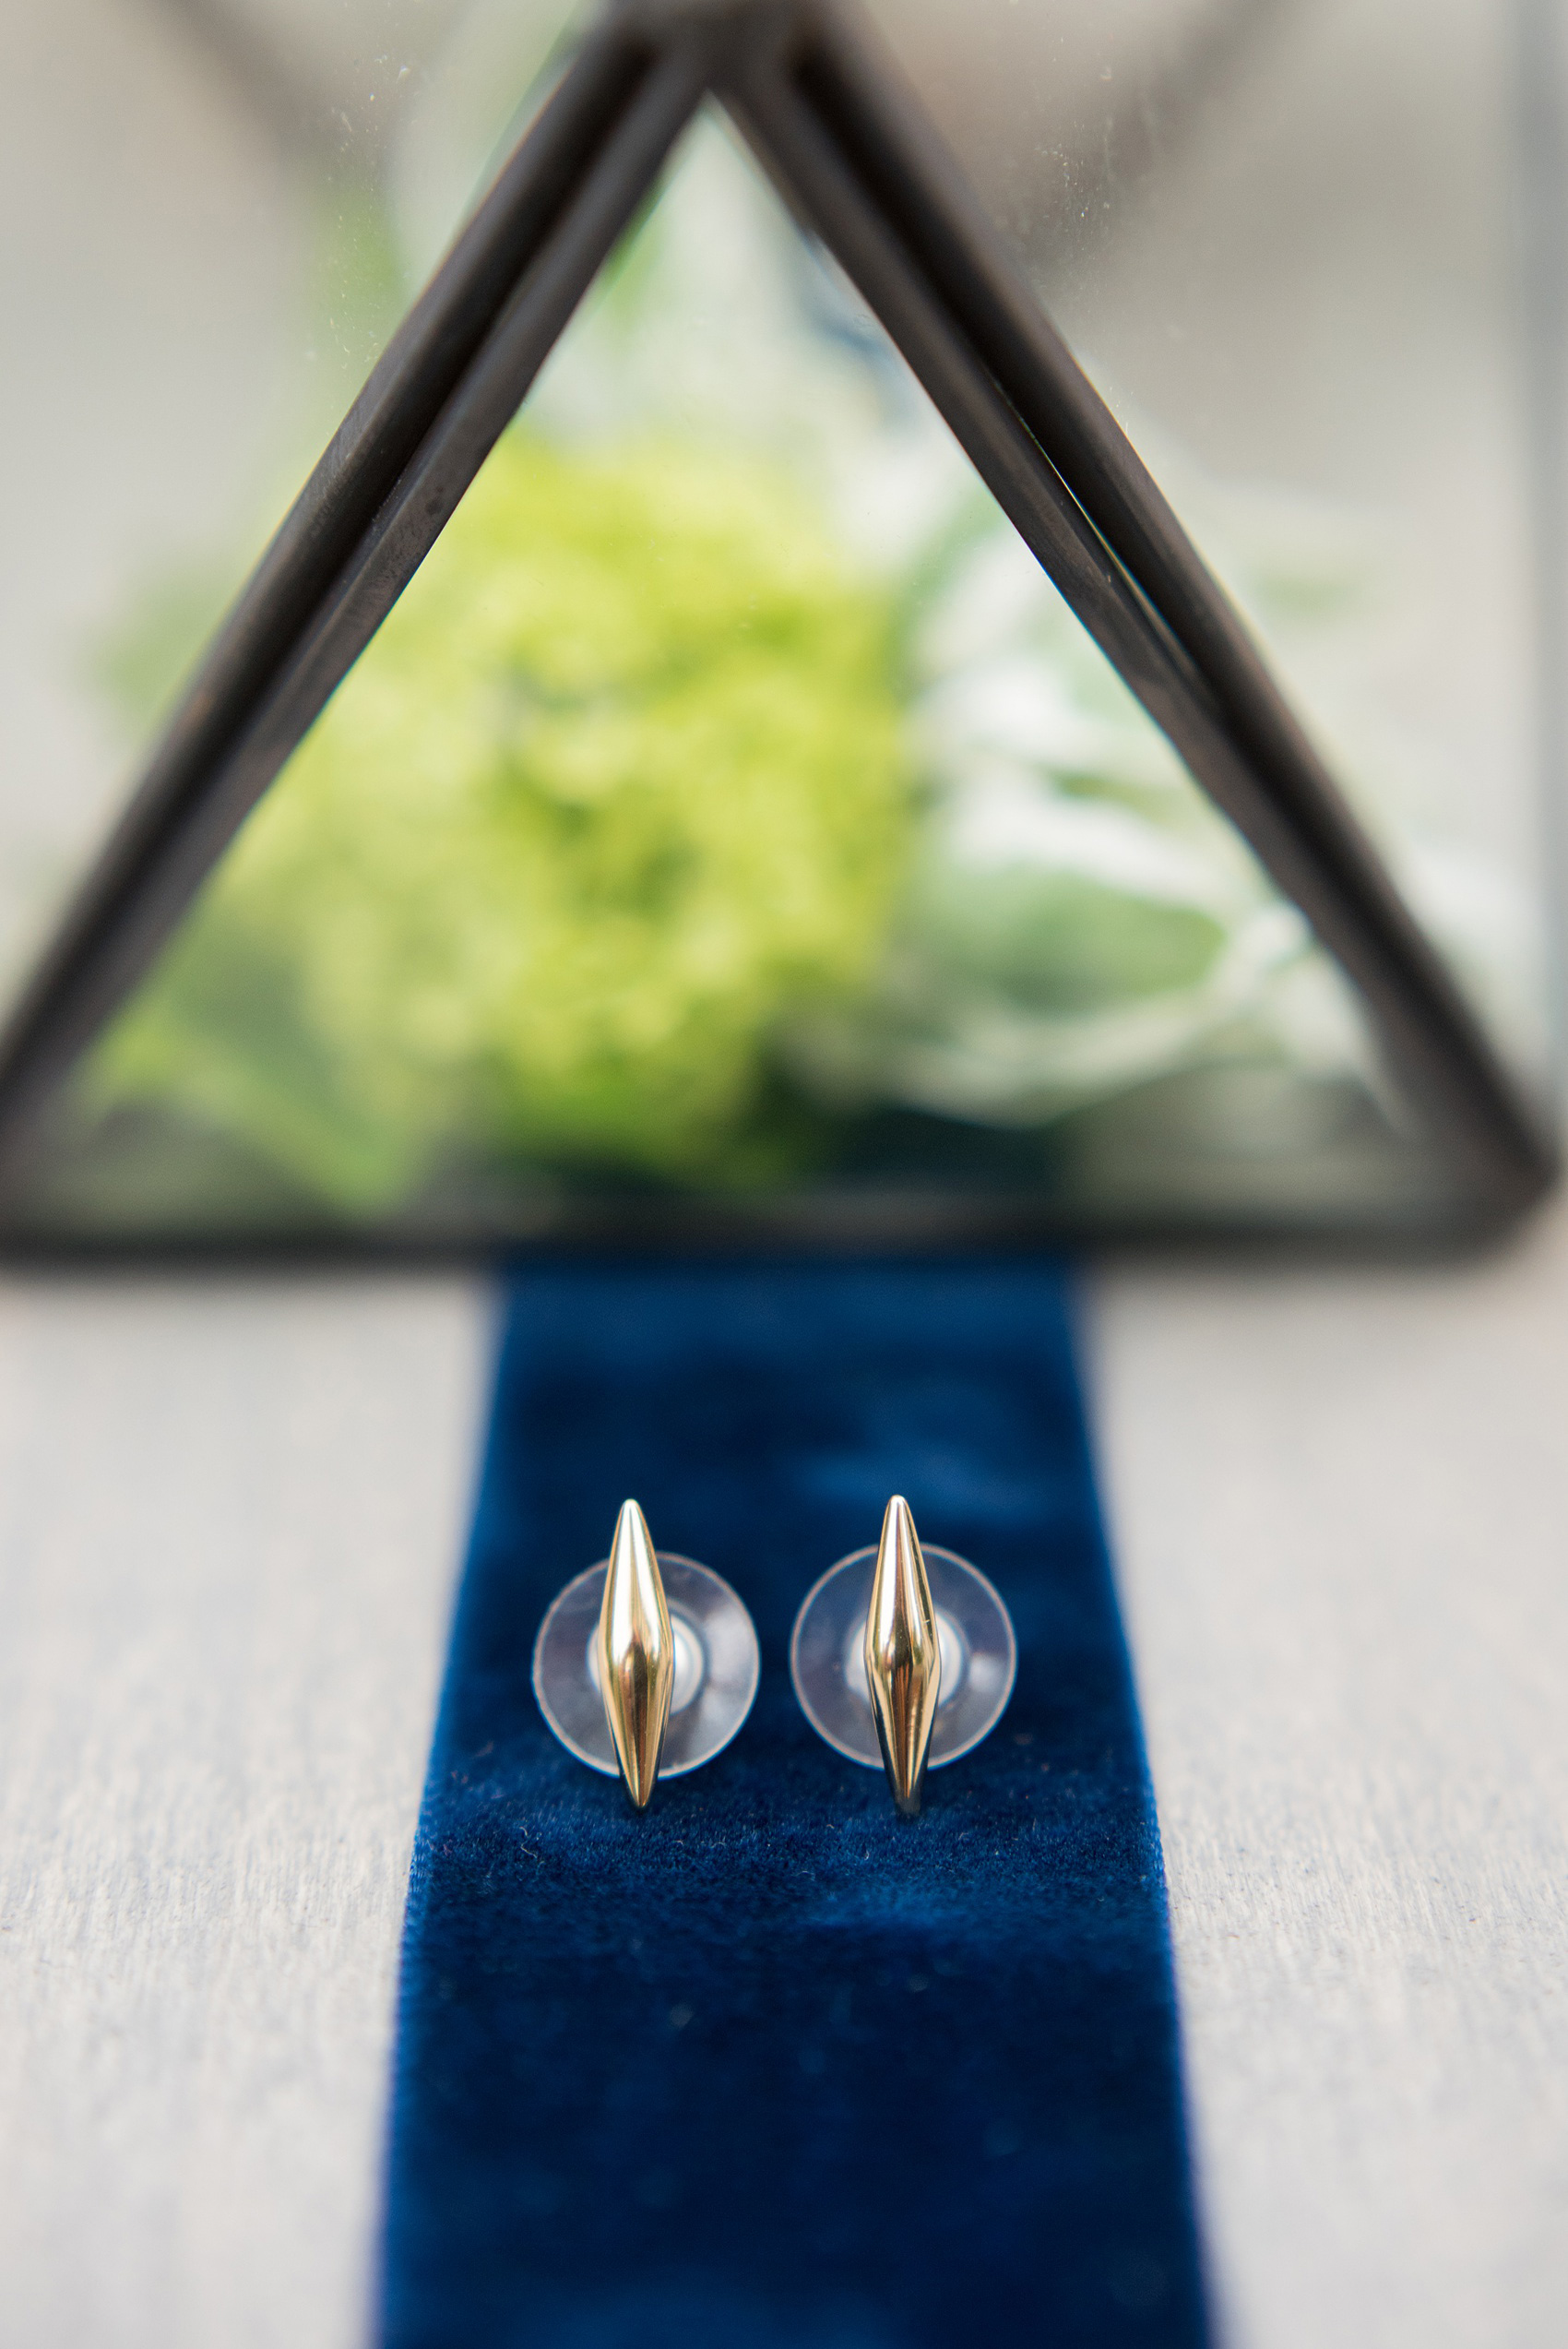 Mikkel Paige Photography photos from a wedding at Leslie-Alford Mims House in North Carolina. Picture of the bride's gold edgy stud earrings.